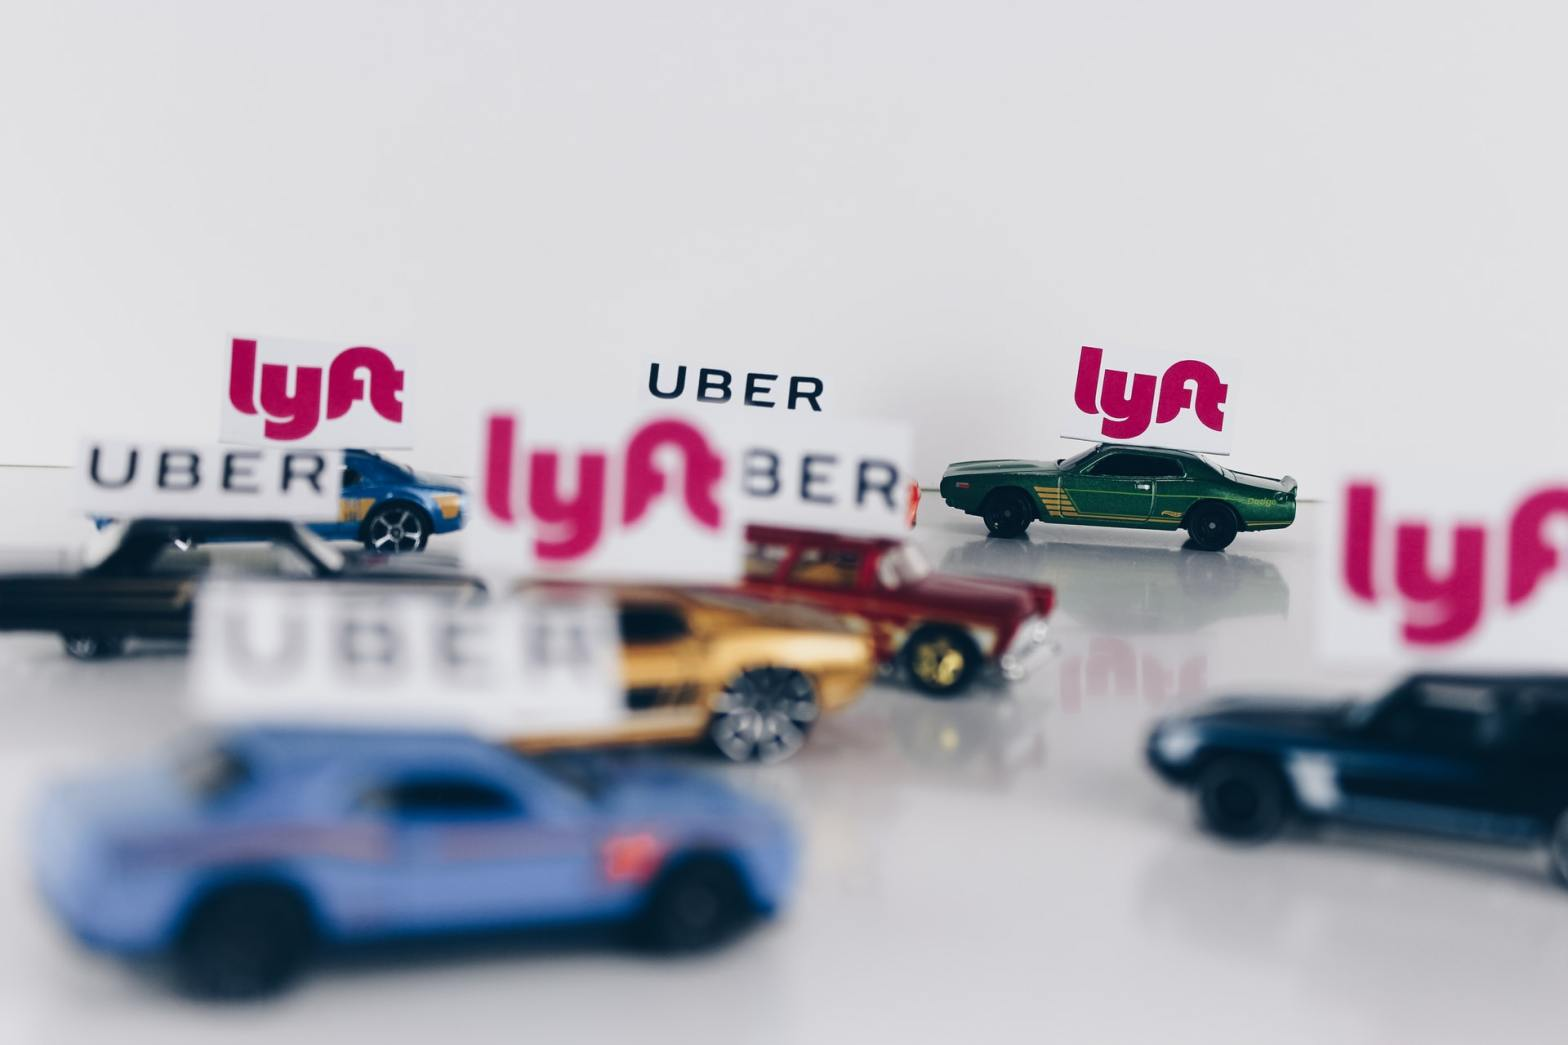 Uber vs Lyft NY which is better